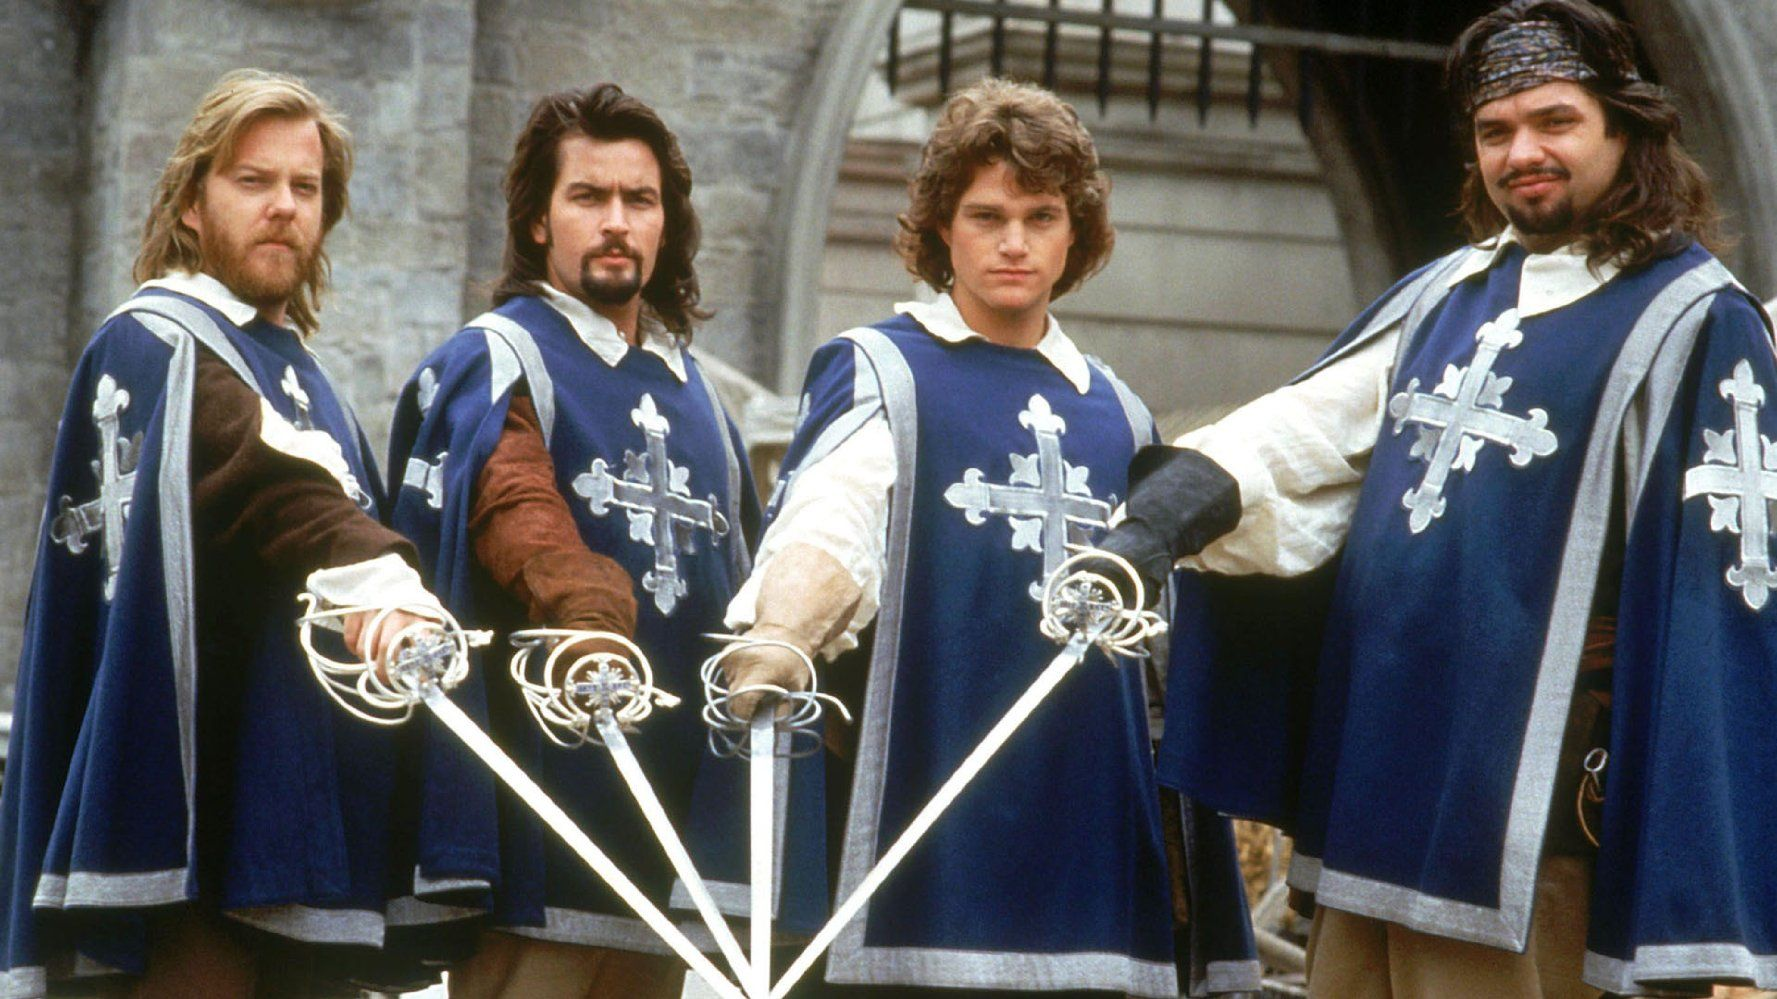 Movie The Three Musketeers 1993 People Charlie Sheen Chris O Donnell Kiefer Sutherland Oliver The Three Musketeers 1993 The Three Musketeers Musketeers